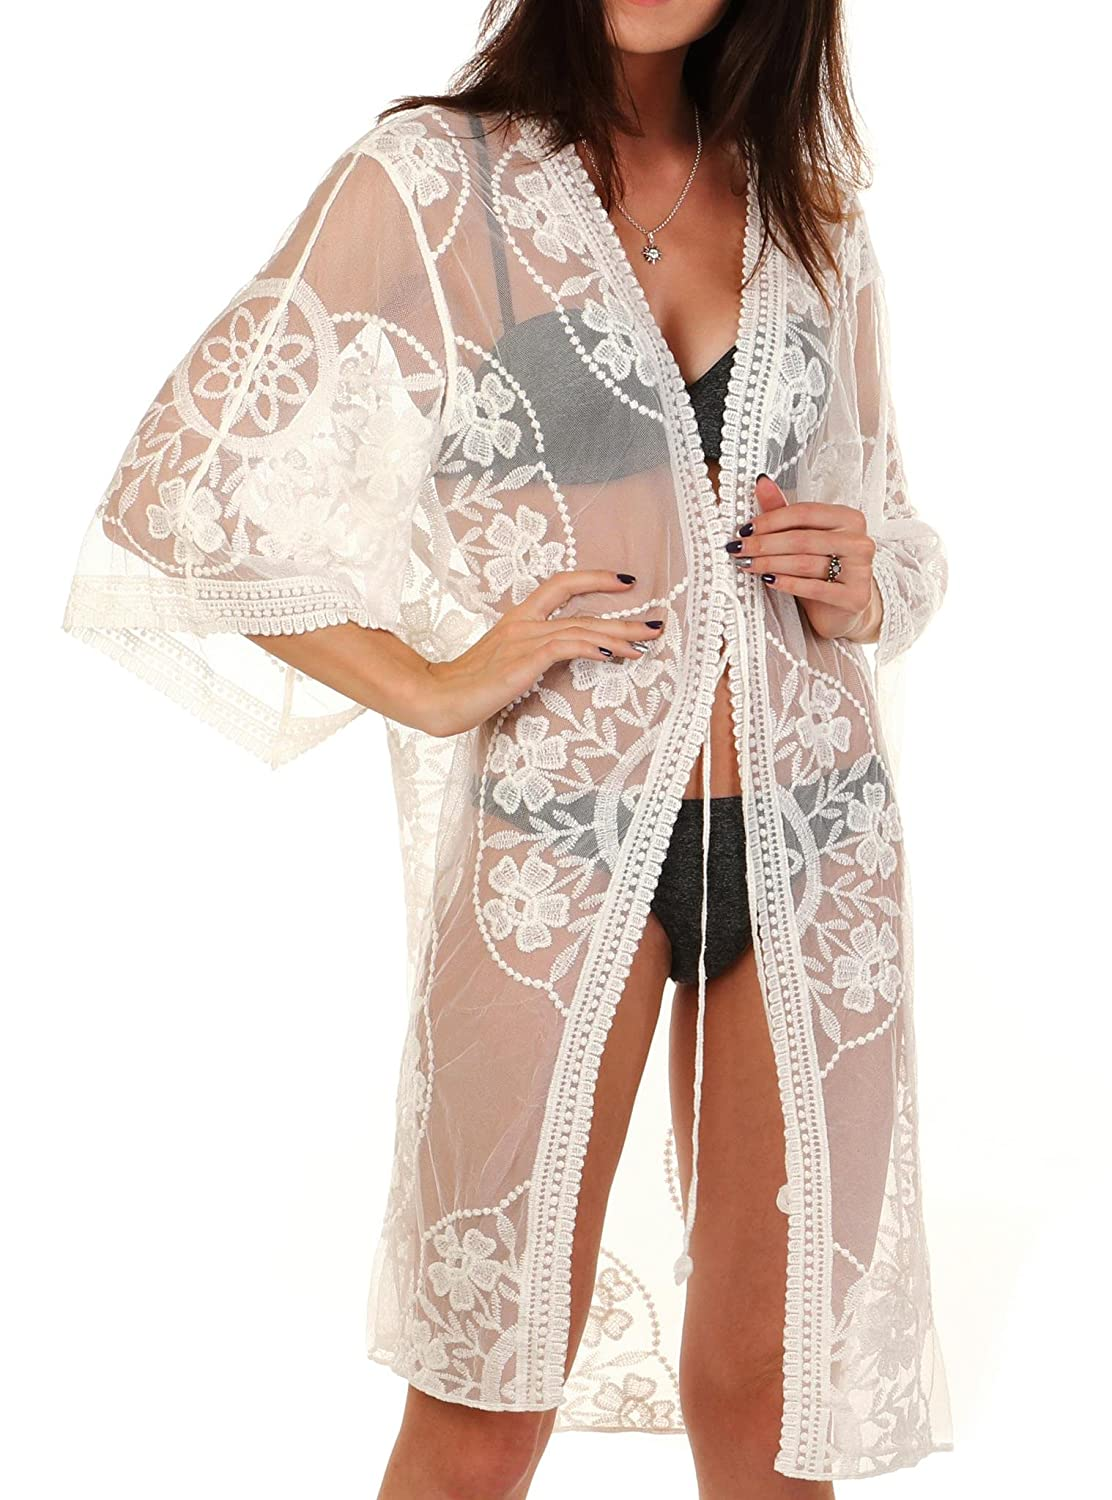 42ed5a88c9d4a ... Bikini Swim Coverup. Wholesale Price:16.99. Polyester + cotton,new soft  fabric,a good stitches with the farbic ♥ One size: length-40.95